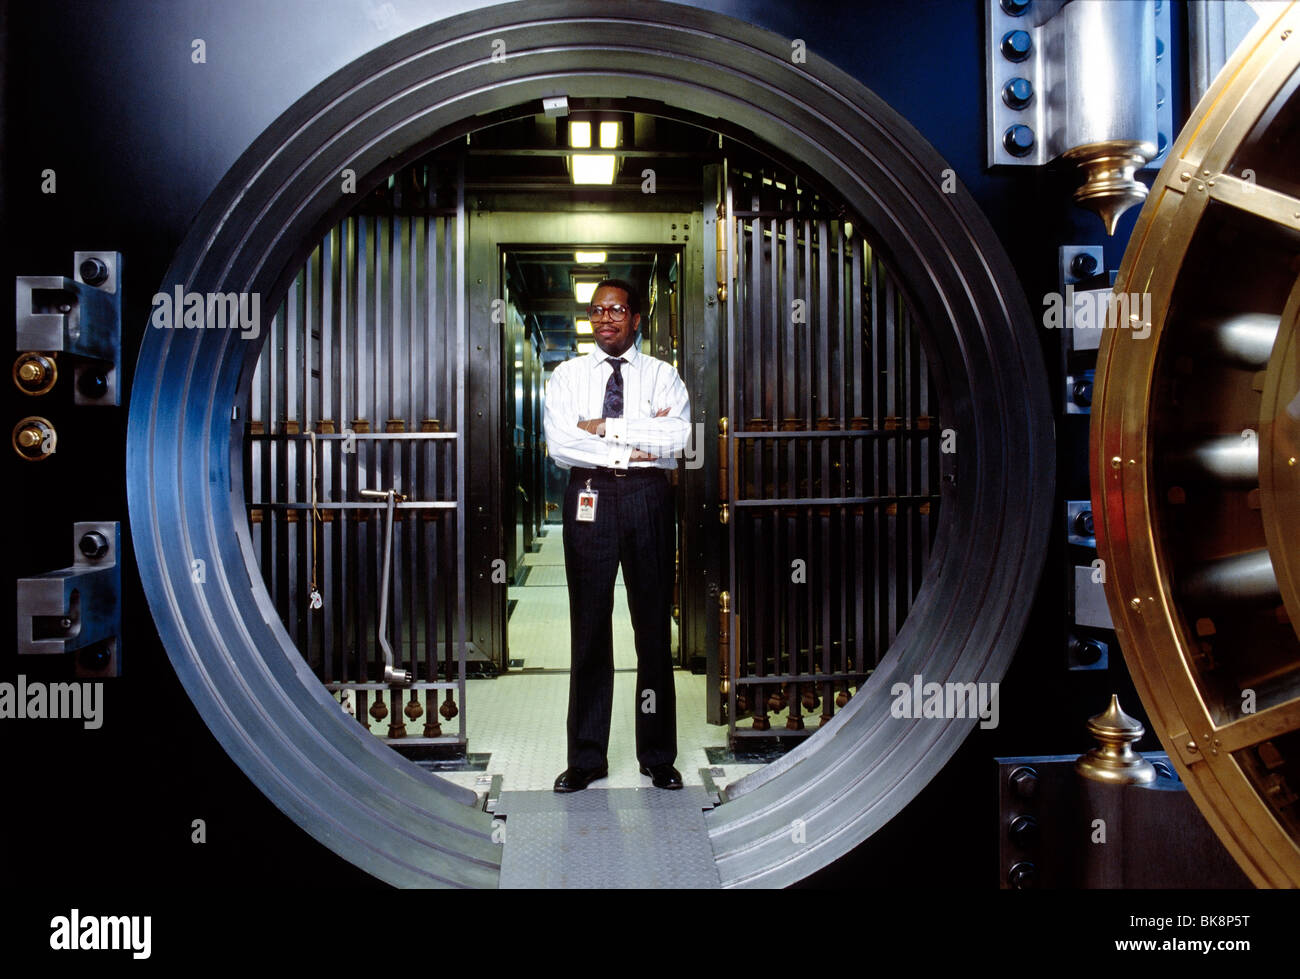 African American bank employee standing in the secure doorway to a large vault - Stock Image